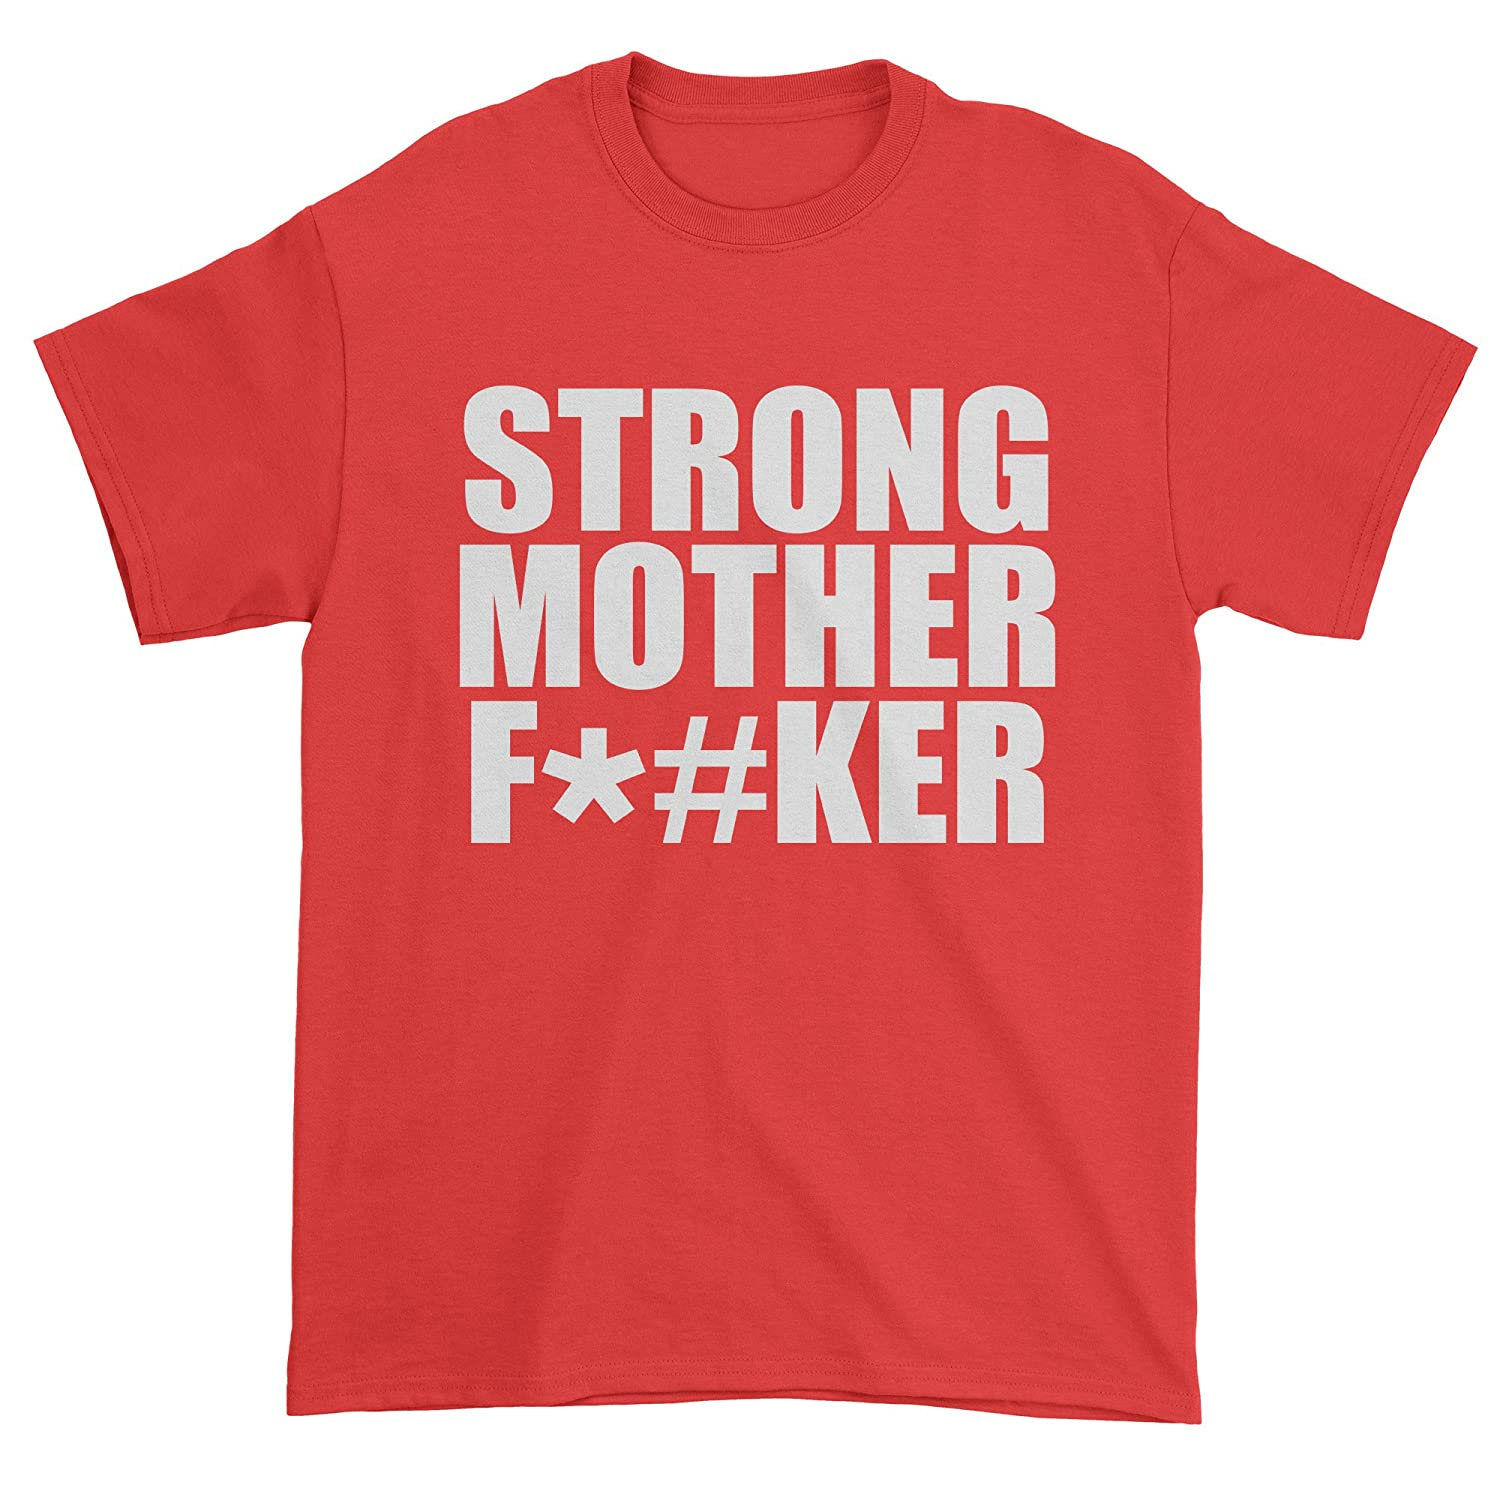 da5882b6 Expression Tees Strong Mother F*#ker GoT Mountain Mens T-shirt: Amazon.ca:  Clothing & Accessories